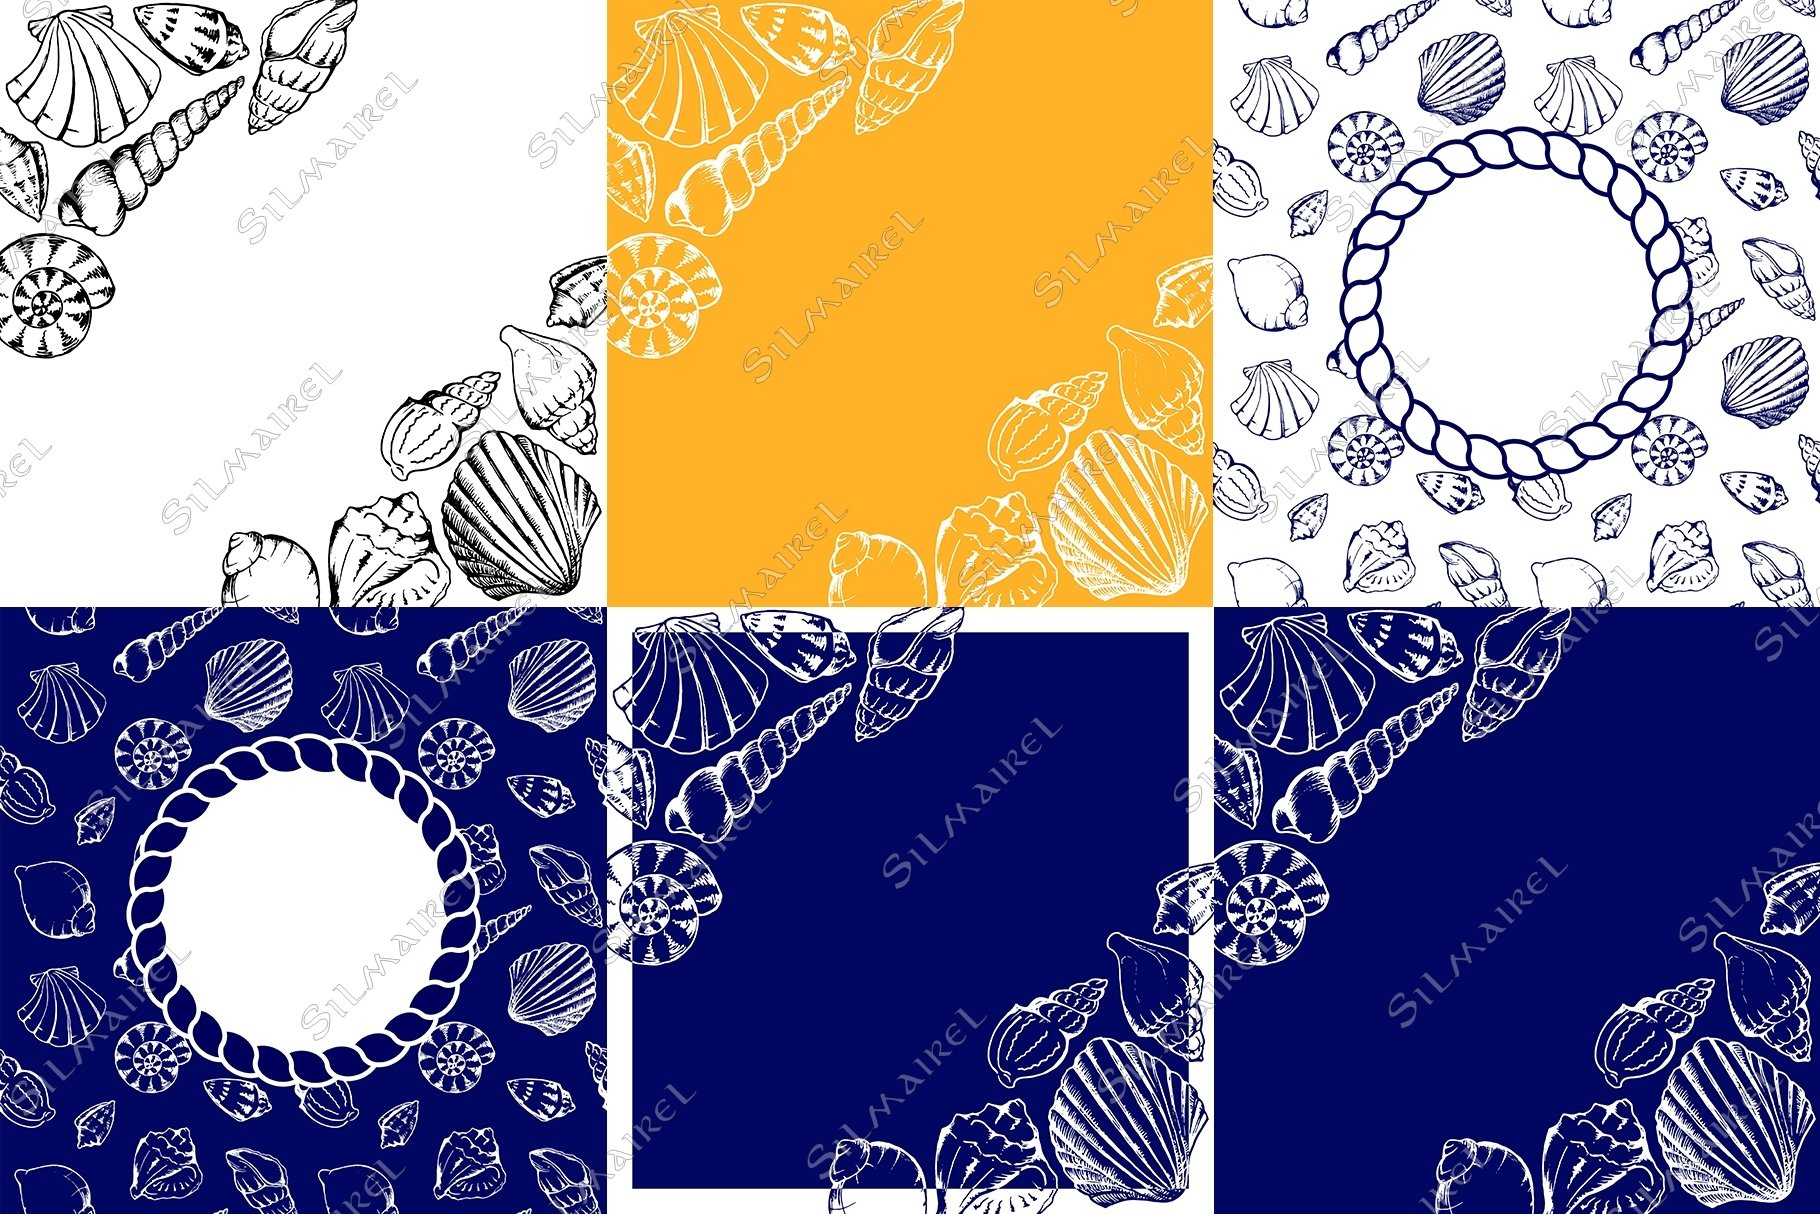 Seashell ink set vector example image 4